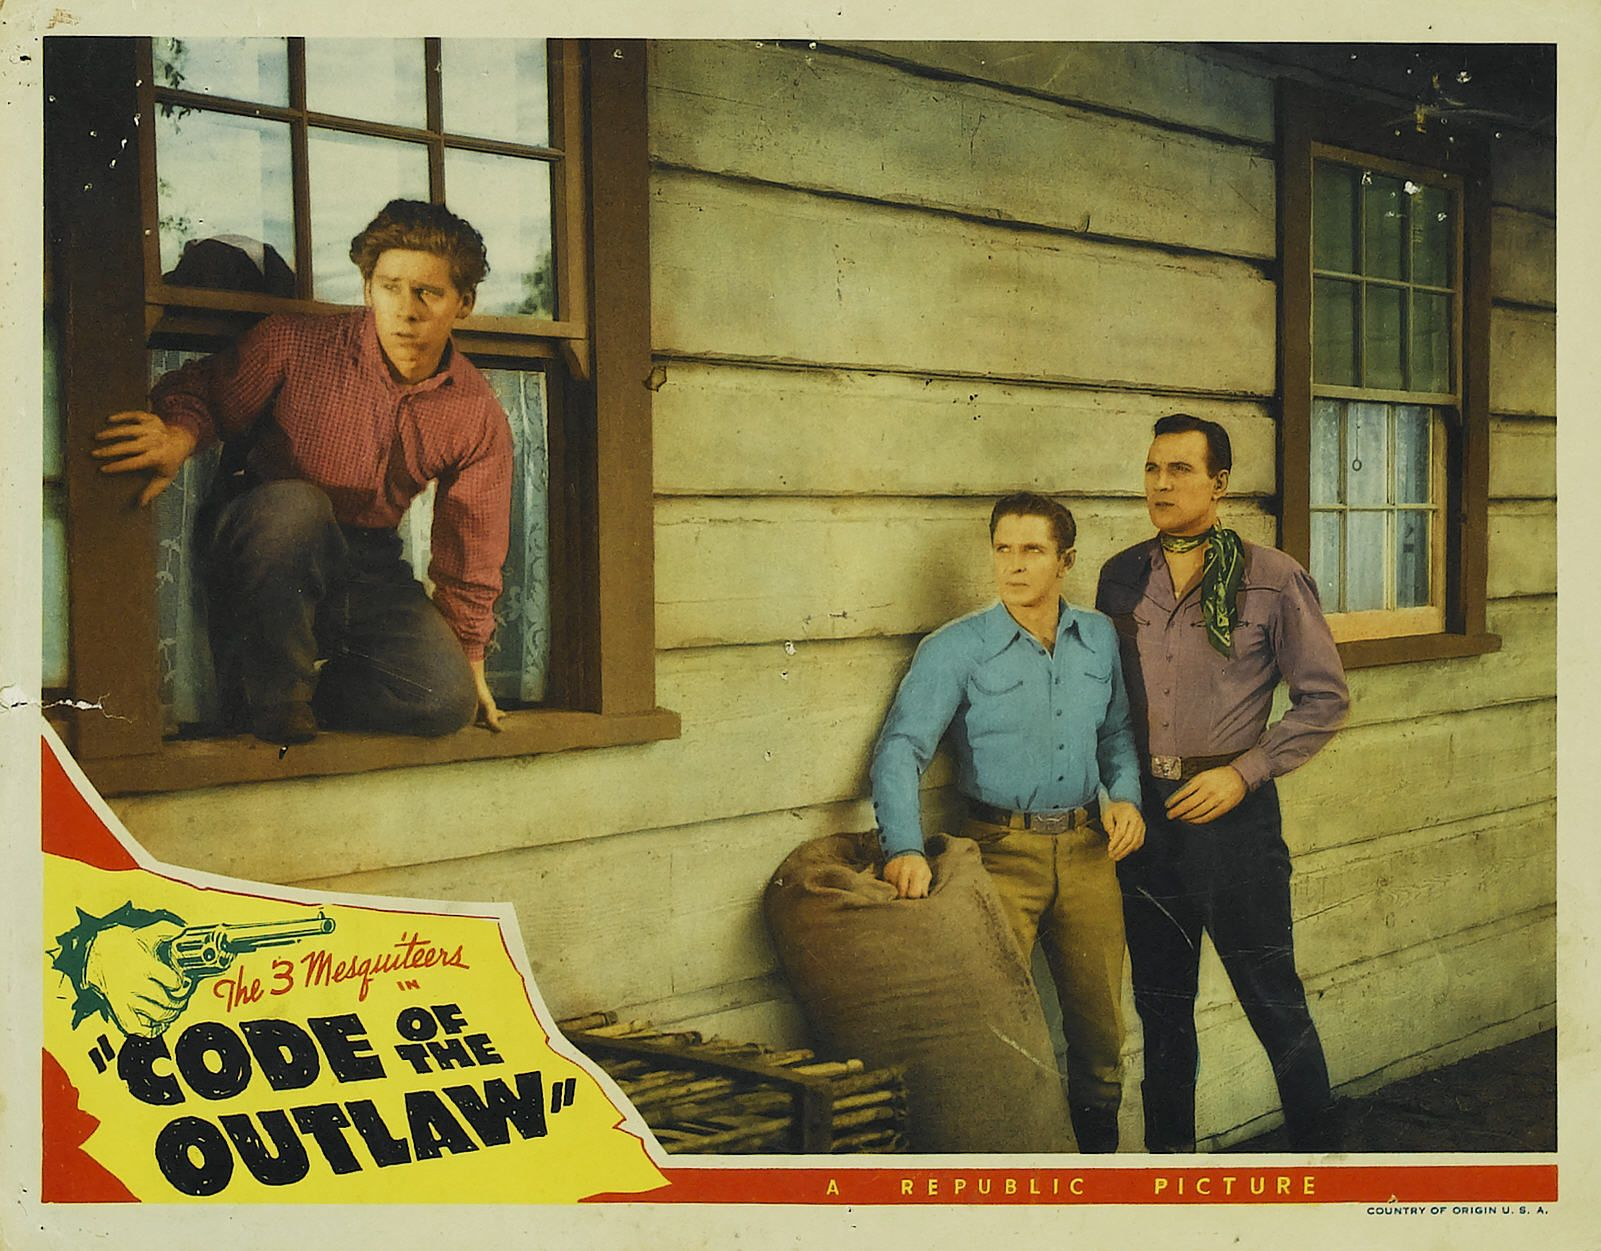 Benny Bartlett, Bob Steele, and Tom Tyler in Code of the Outlaw (1942)